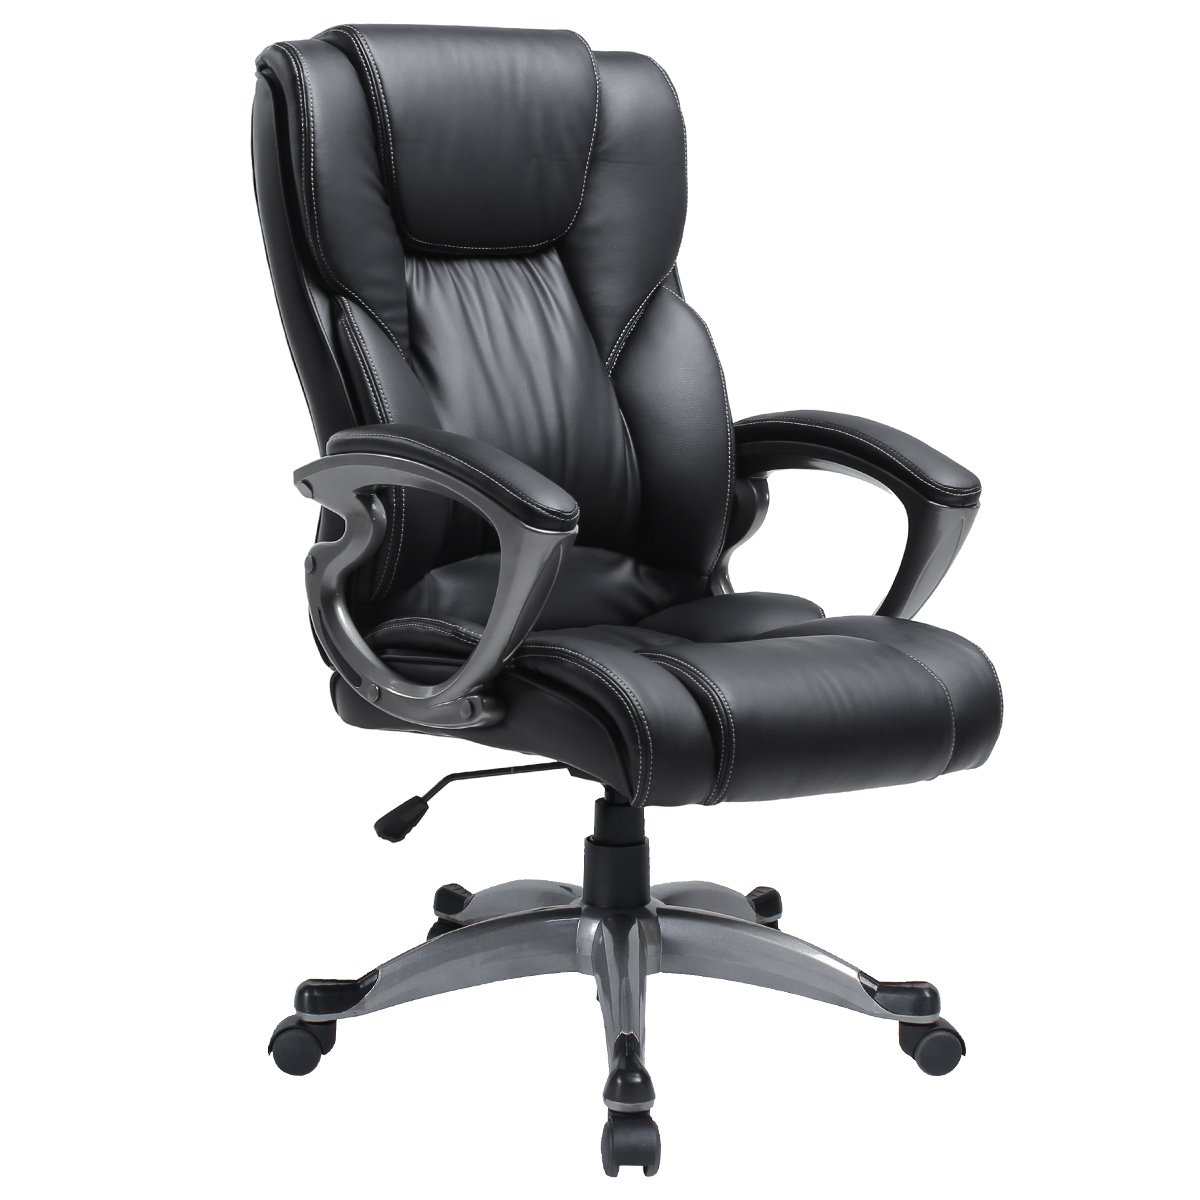 Ergonomic Executive Adjustable Swivel Task Chair High Back Home Office Desk PU Leather Chair with Headrest Black